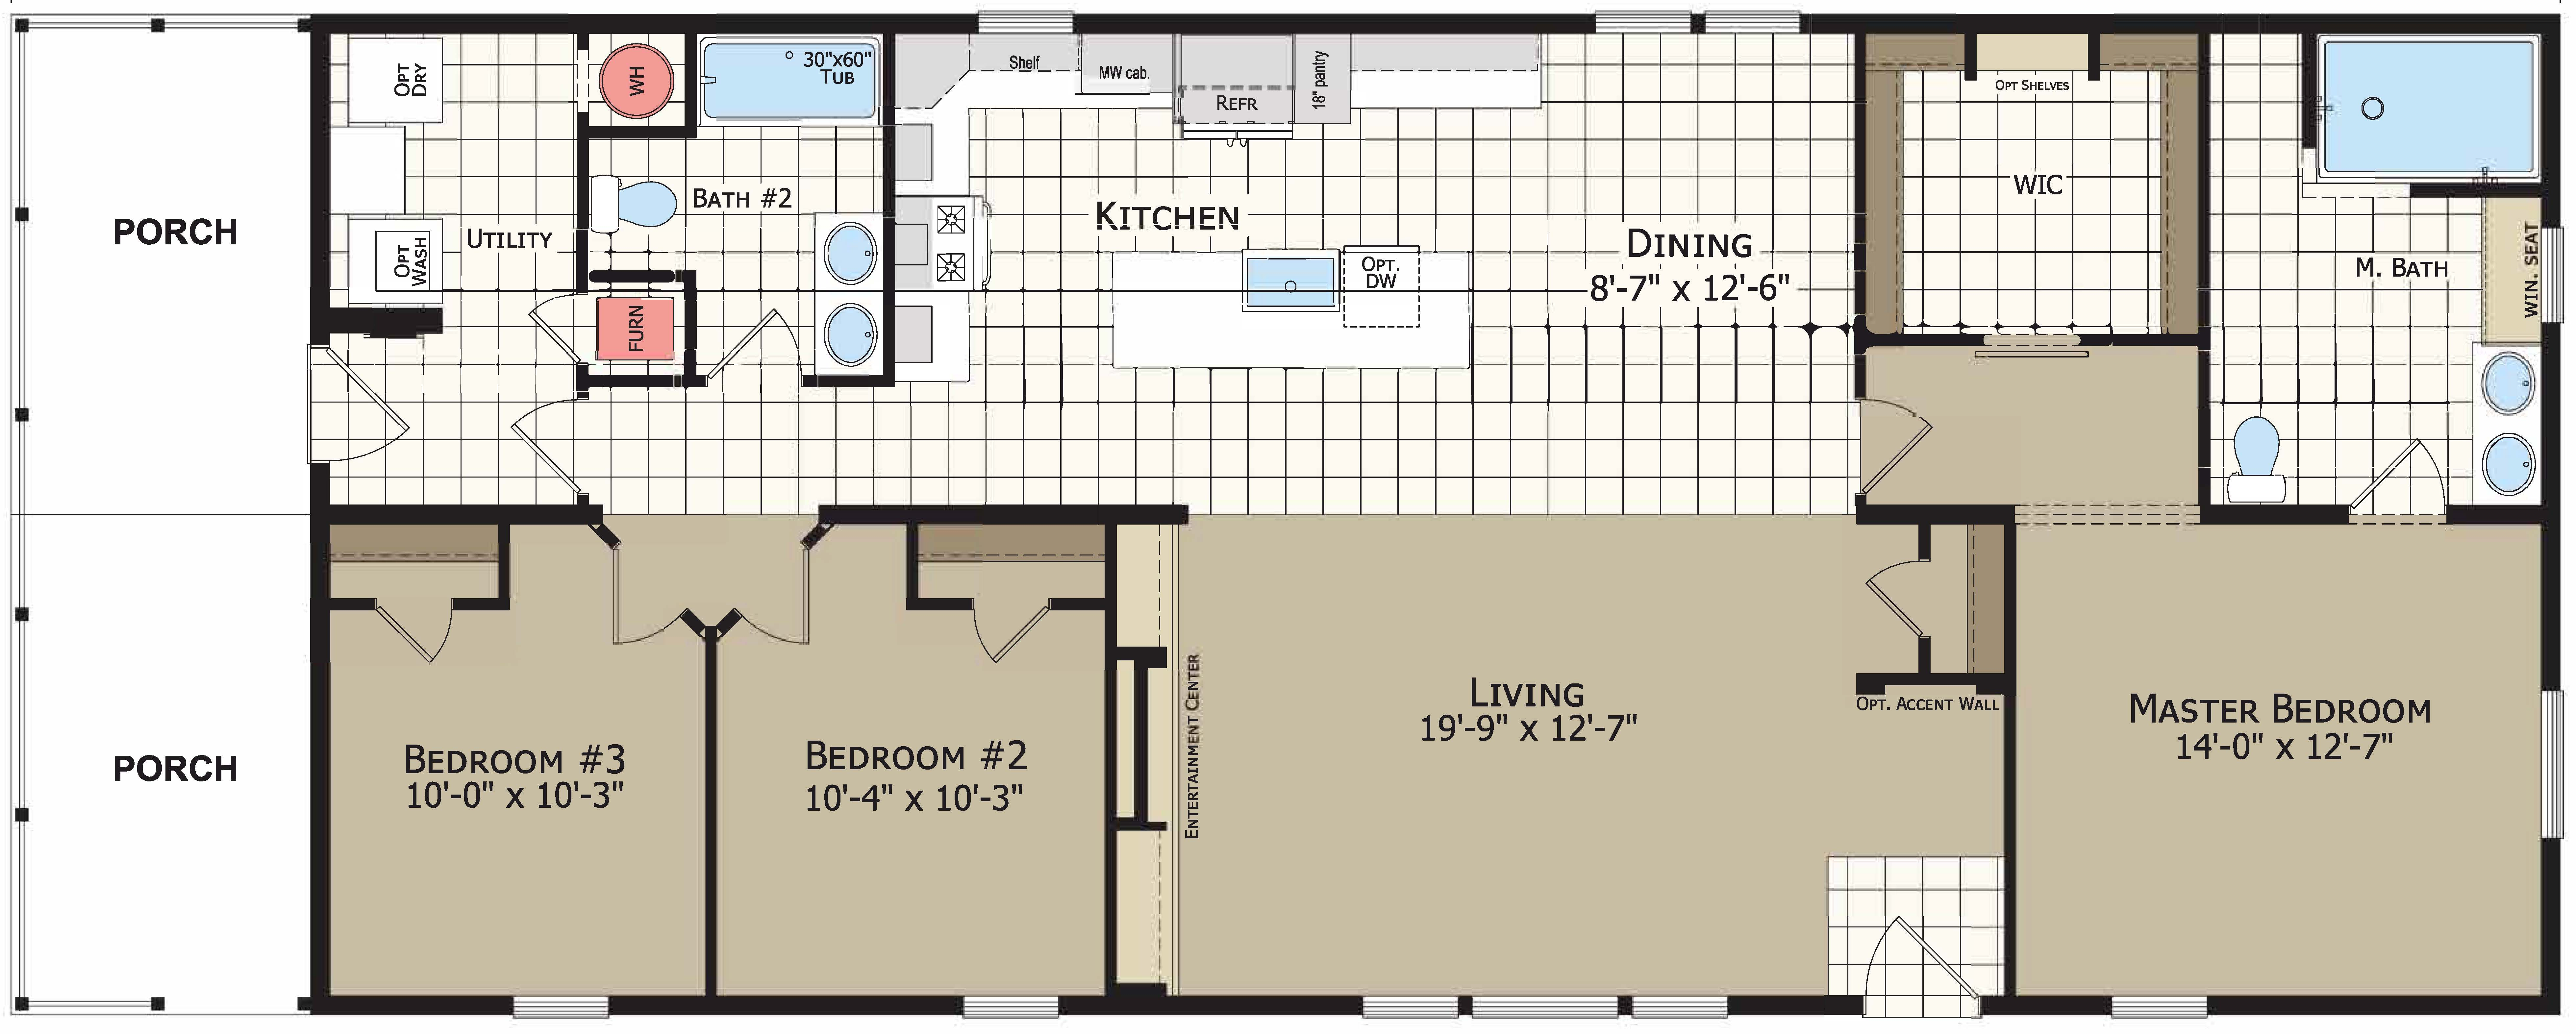 floorplan image for unit 332